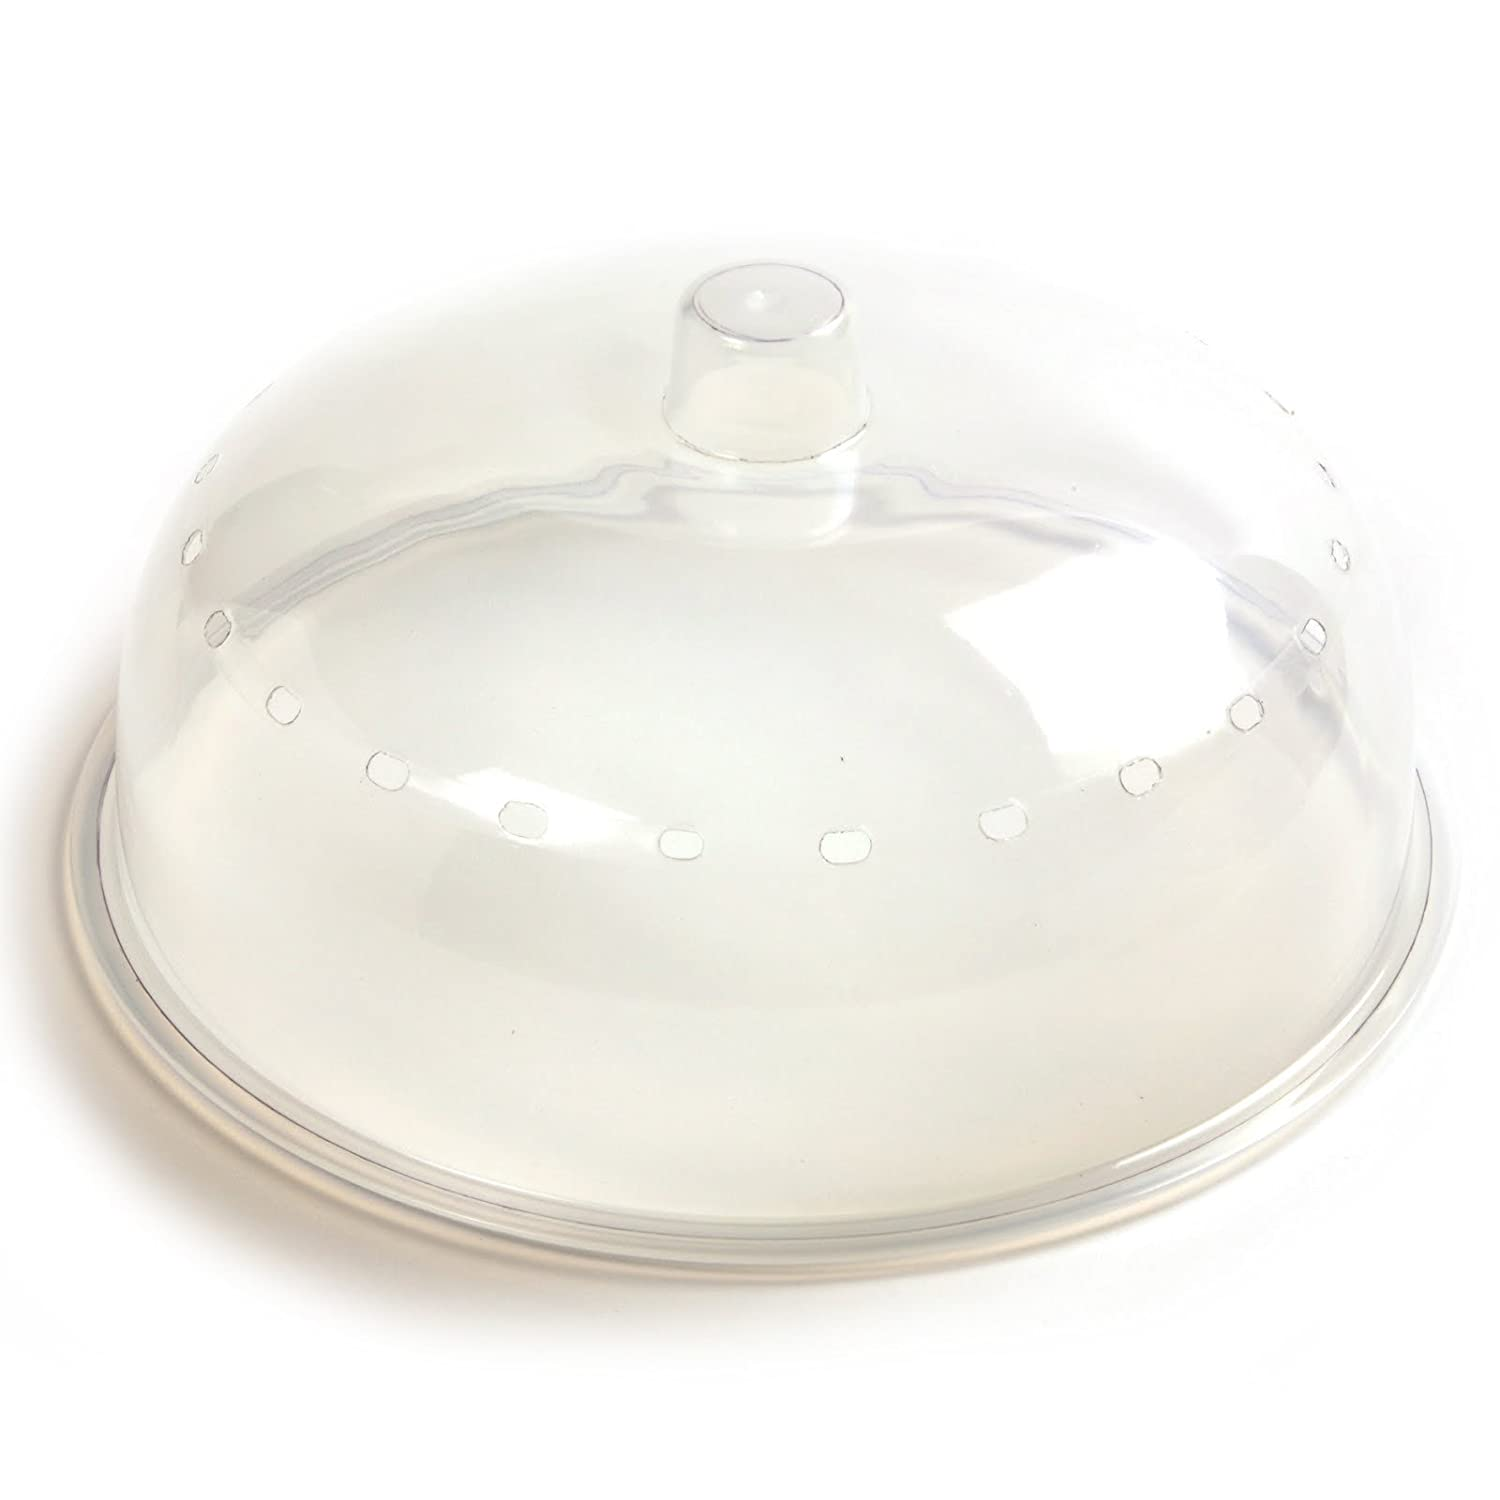 Norpro 2067 Microwave Cover, One Size, Clear